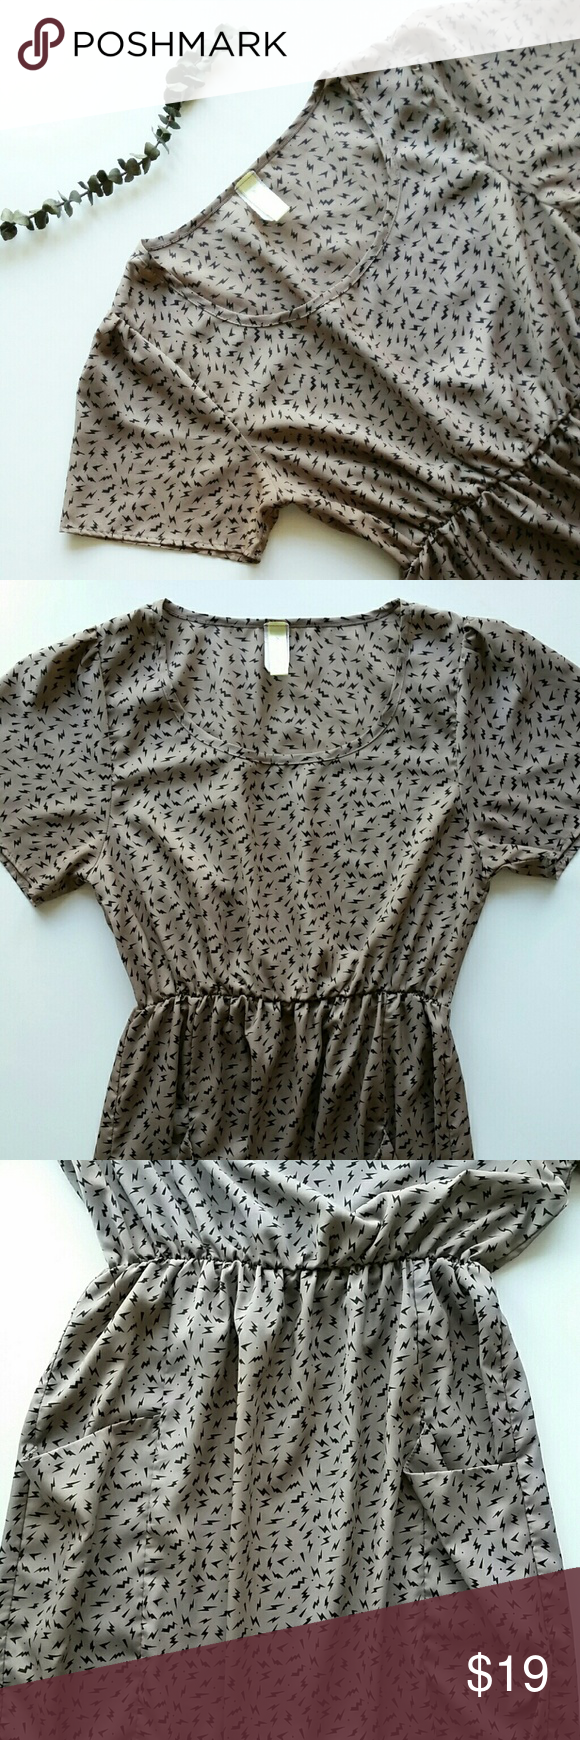 """Vintage Inspired Lightning Pocket Dress Lightning Pocket Dress *Mocha (Taupe) fabric and black lightning patterns  *Elastic waist band  *100% polyester? ?  *Size large  /Pit to pit : 16.5"""" flat  /Length : 34.5"""" *In great pre-loved condition  *No trade Please Bee Stiched  Dresses"""